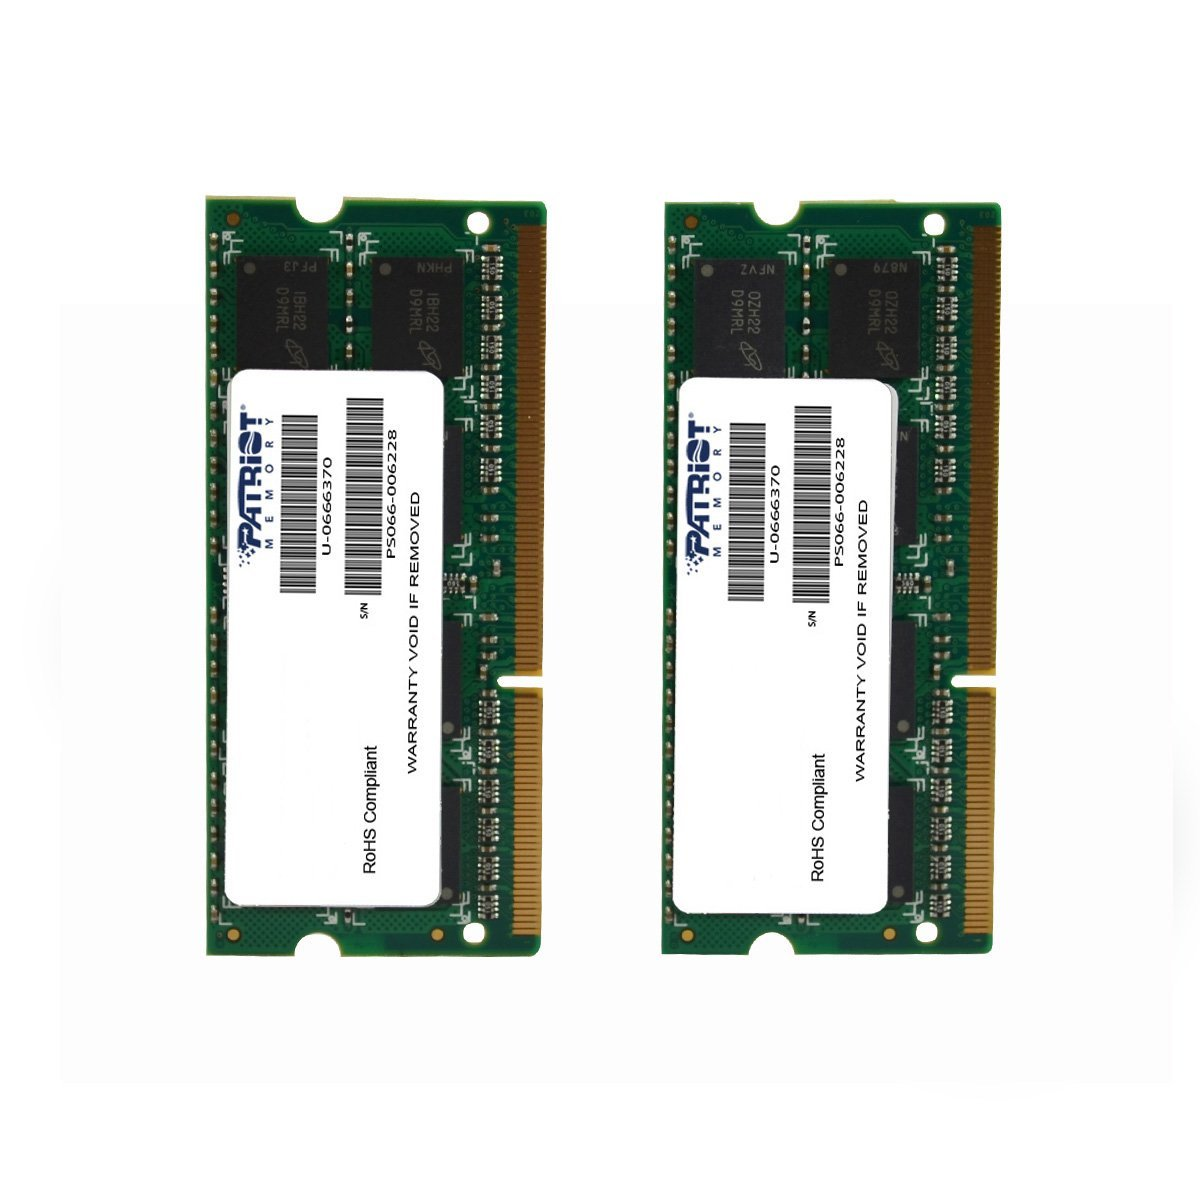 Memoria Ram 8gb Patriot Mac Series Apple Sodimm Kit (2x4gb) Ddr3 1333 Pc3 10600 204-pin So-dimm Psa38g1333sk